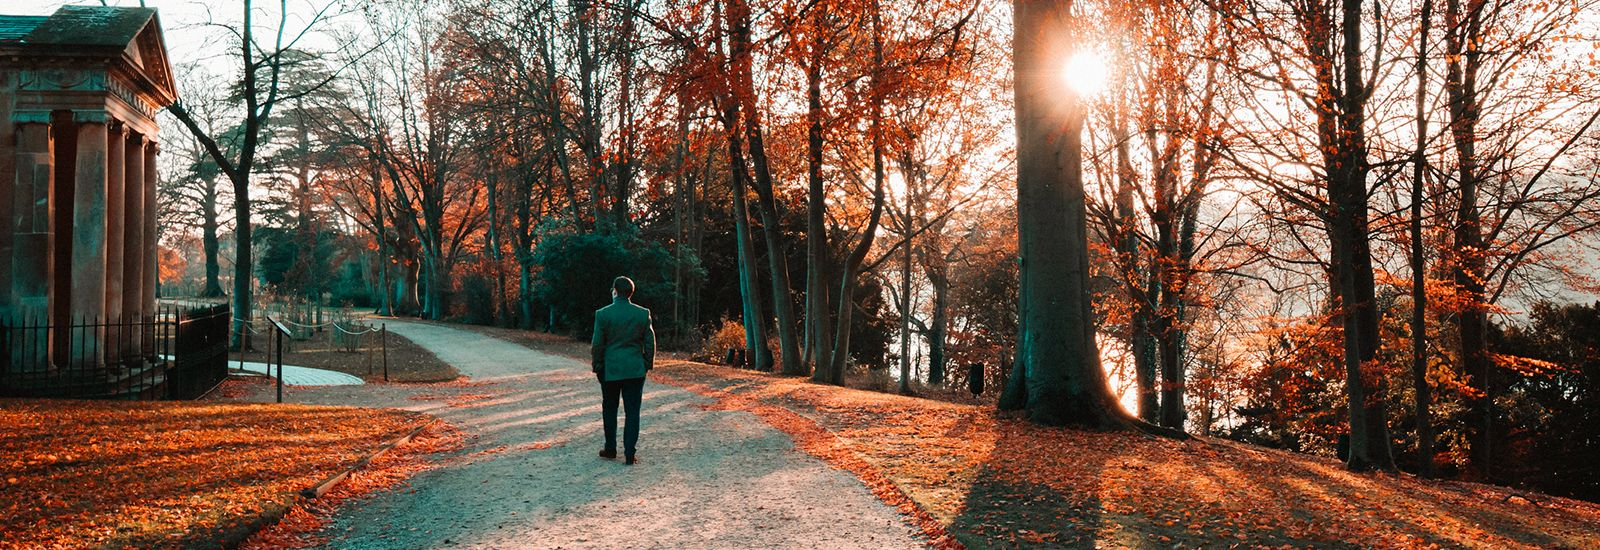 A person walking at sunset along a path in autumn